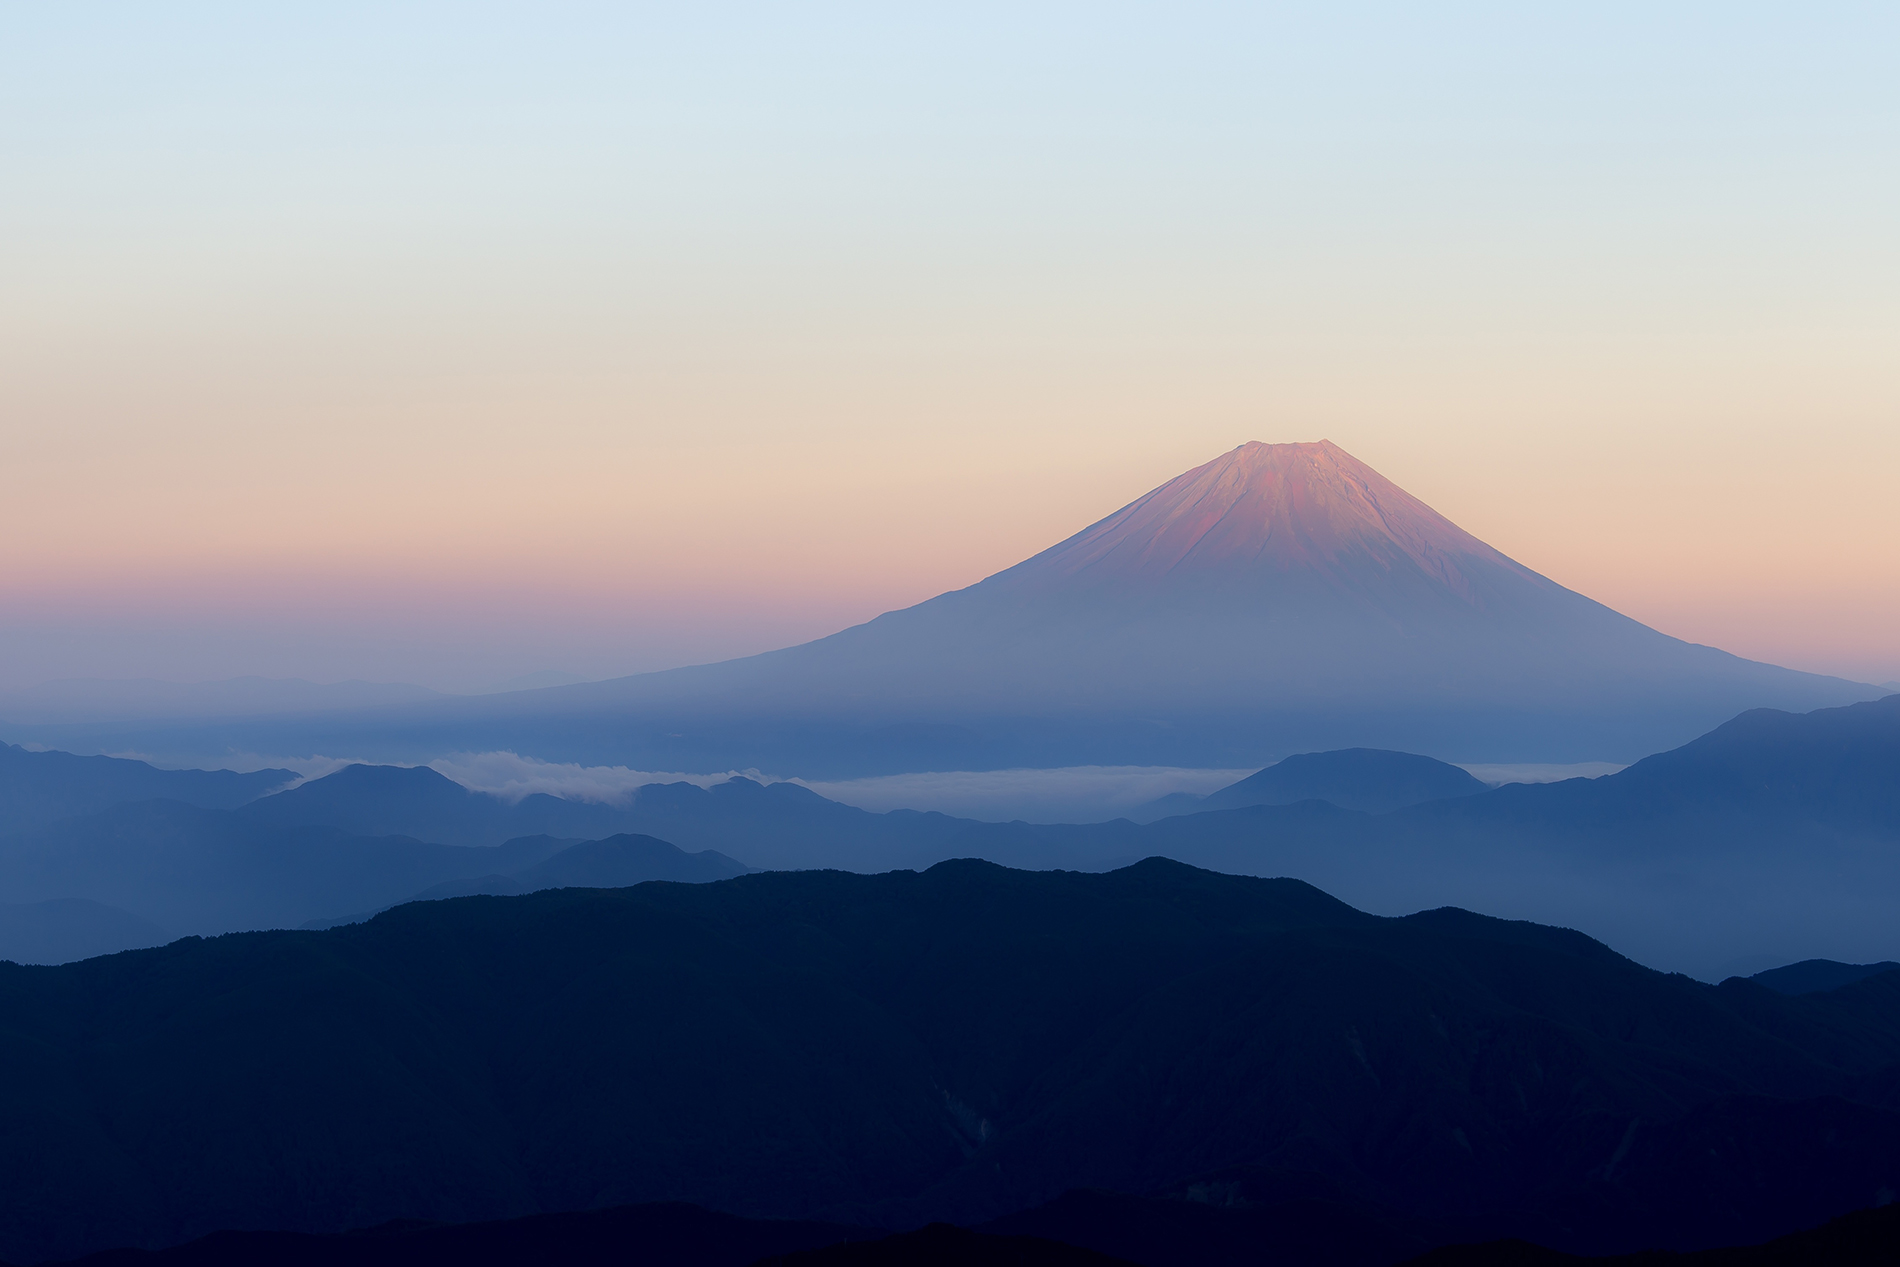 Mount Fuji early morning beauty 53536